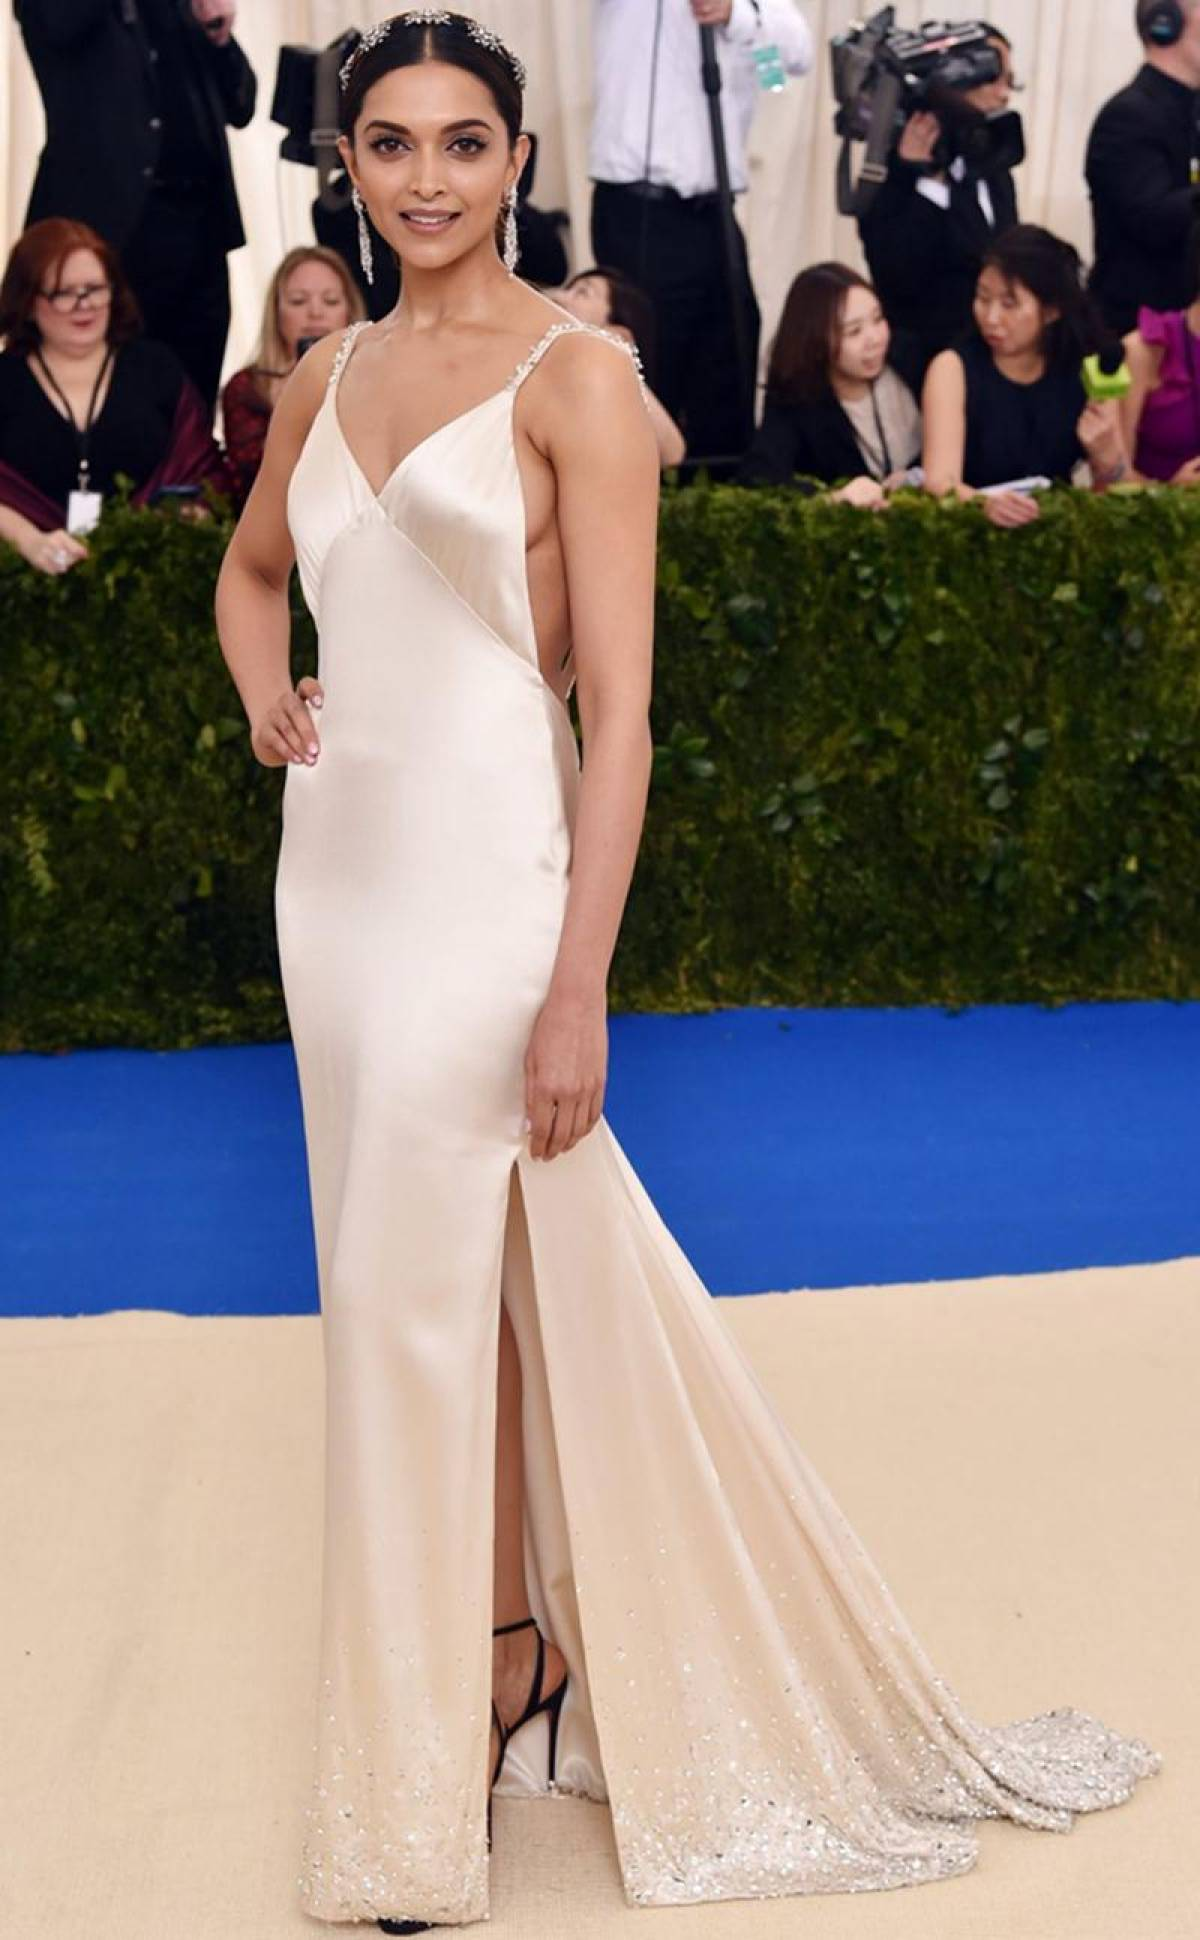 Deepika Padukone's Met Gala outfit is the fifth most ...